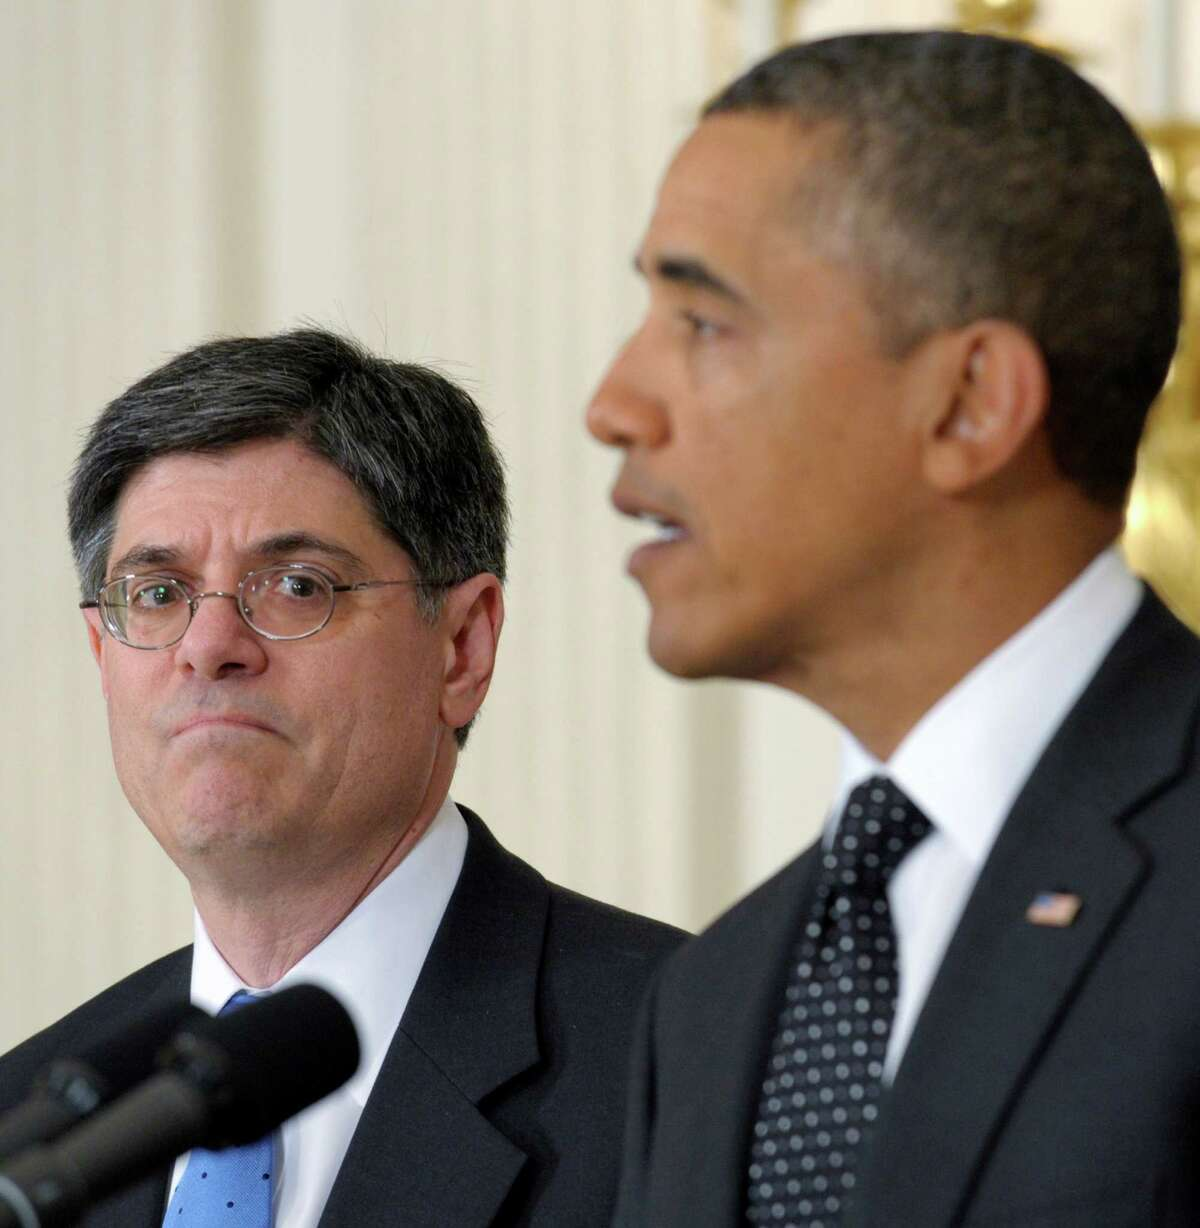 Jack Lew is expected to be named Treasury secretary by President Barack Obama this week.